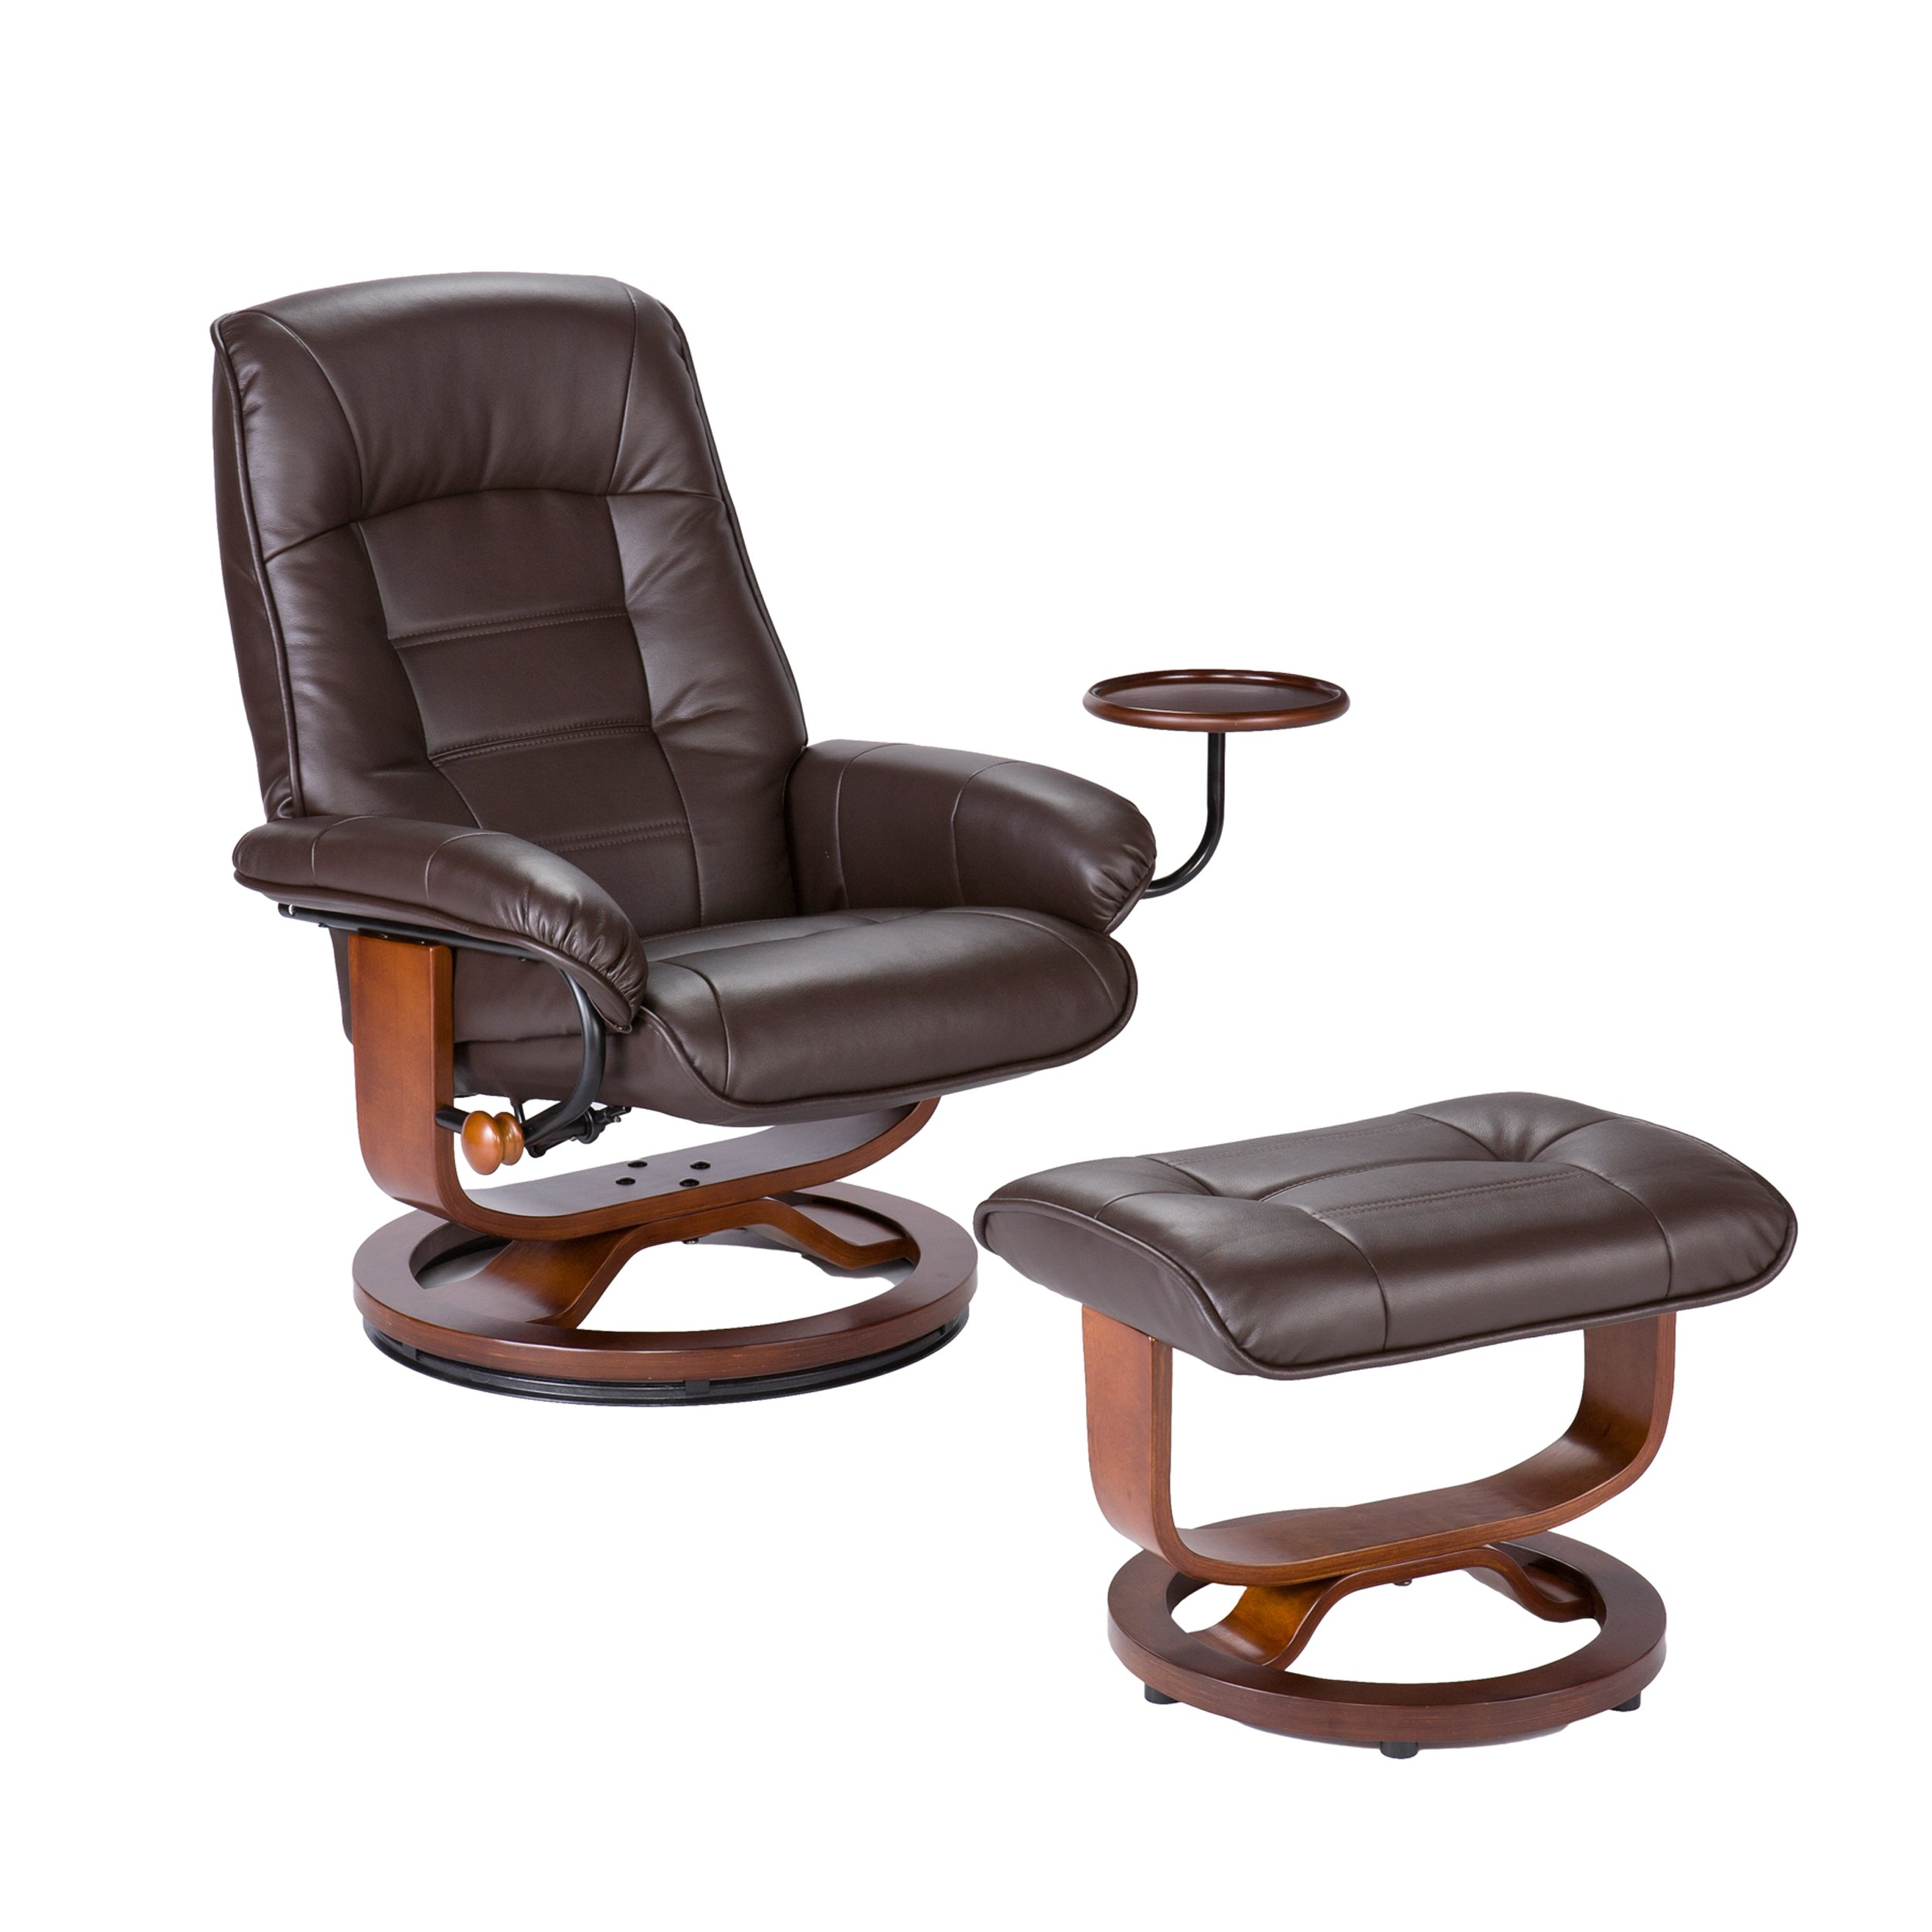 Southern Enterprises AMZCR3731PU Bonded Leather Recliner with Ottoman , Café Brown